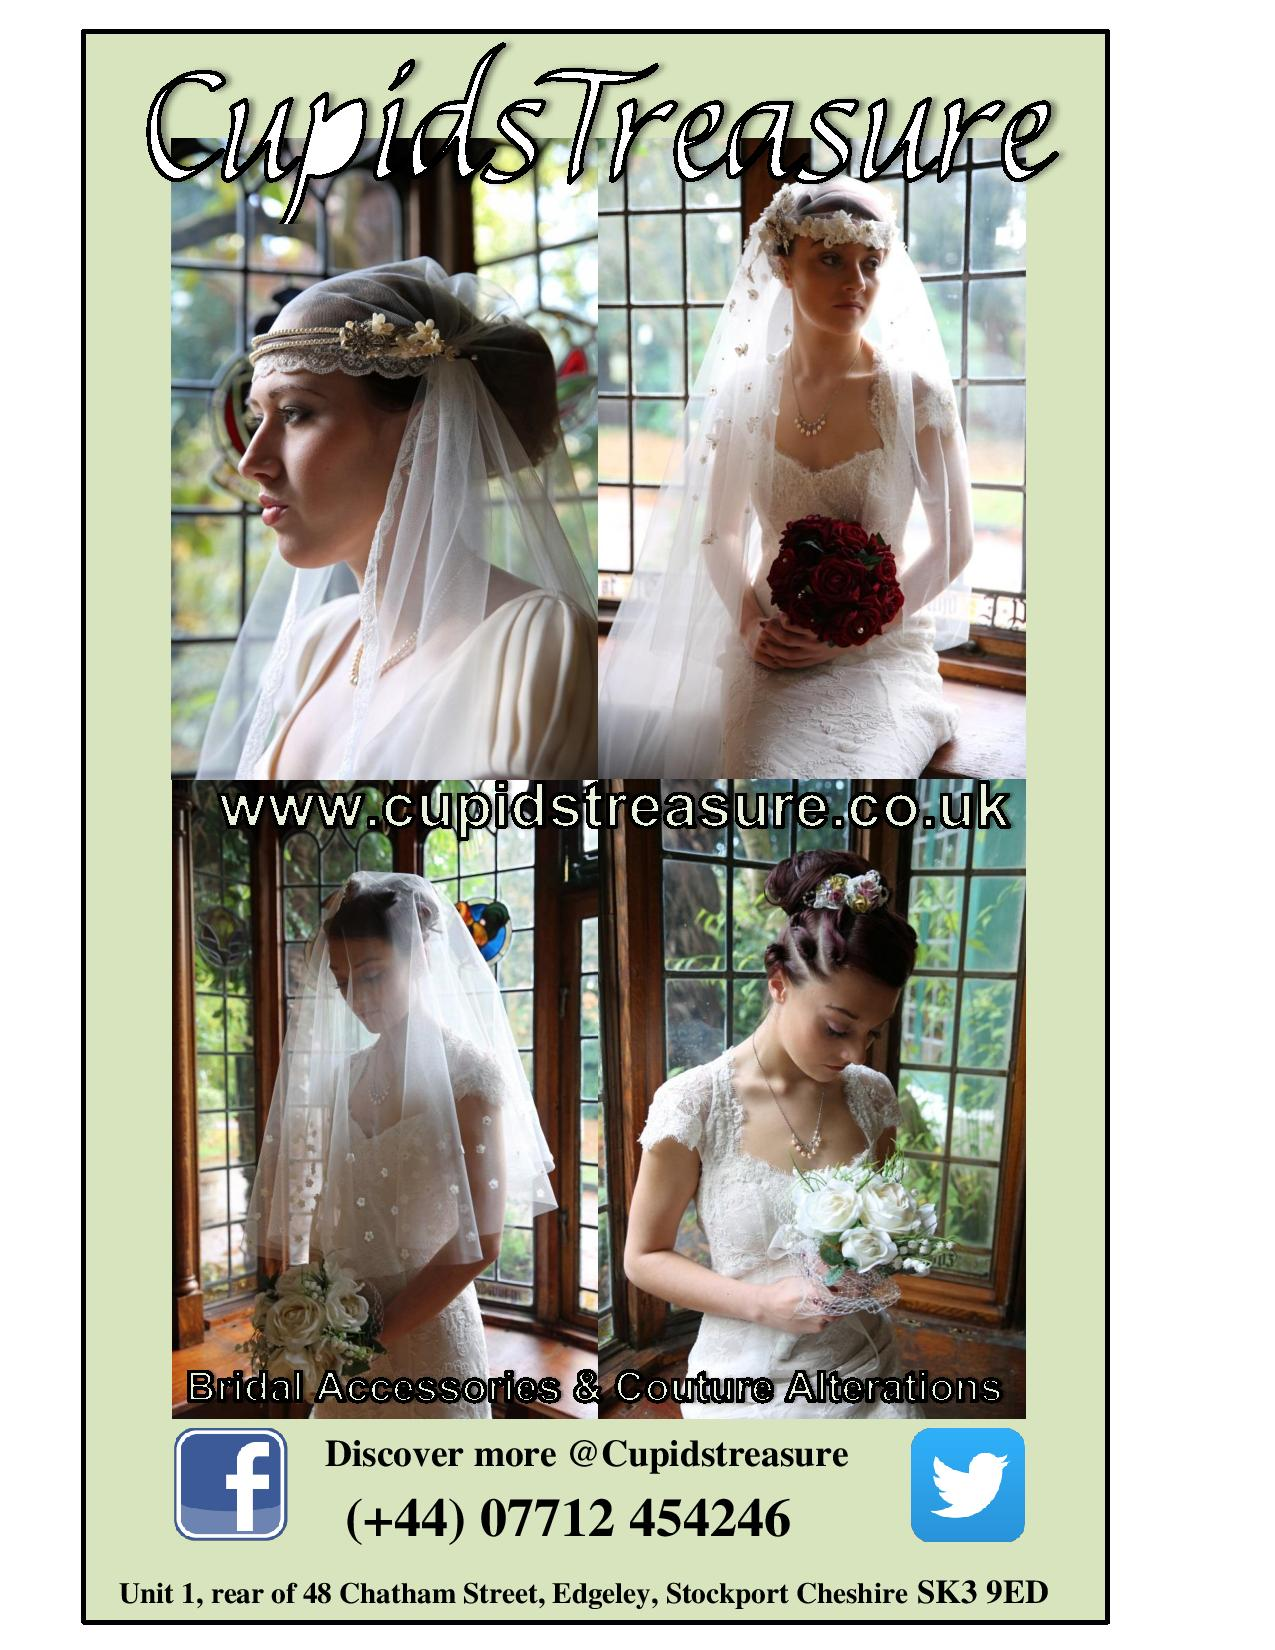 Bridal Accessories and Alterations in Manchester or Stockport - Cupids